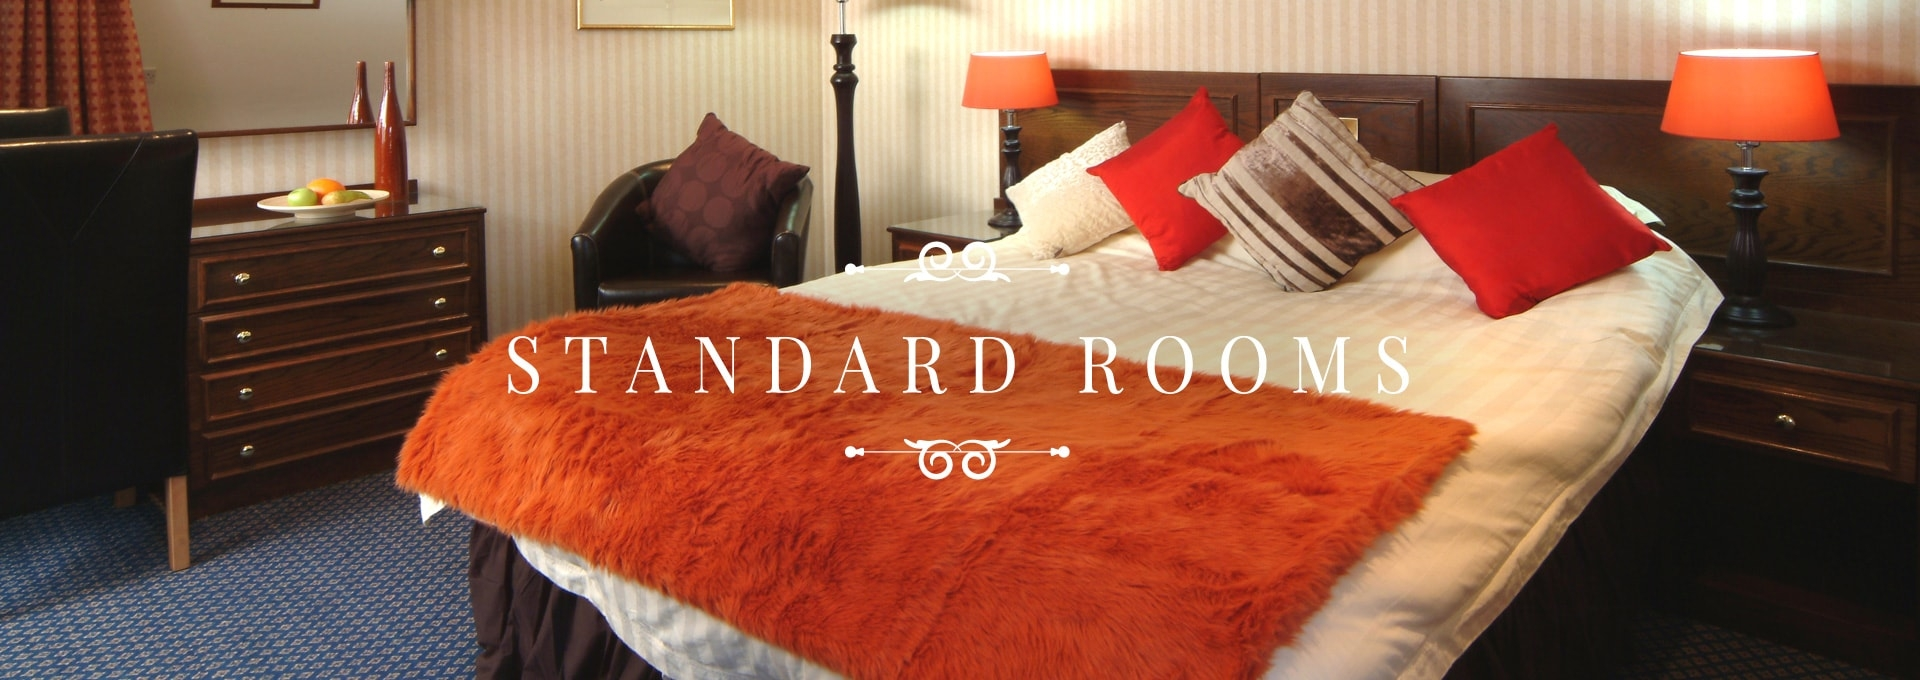 Standard Rooms at the Durrant House Hotel Bideford